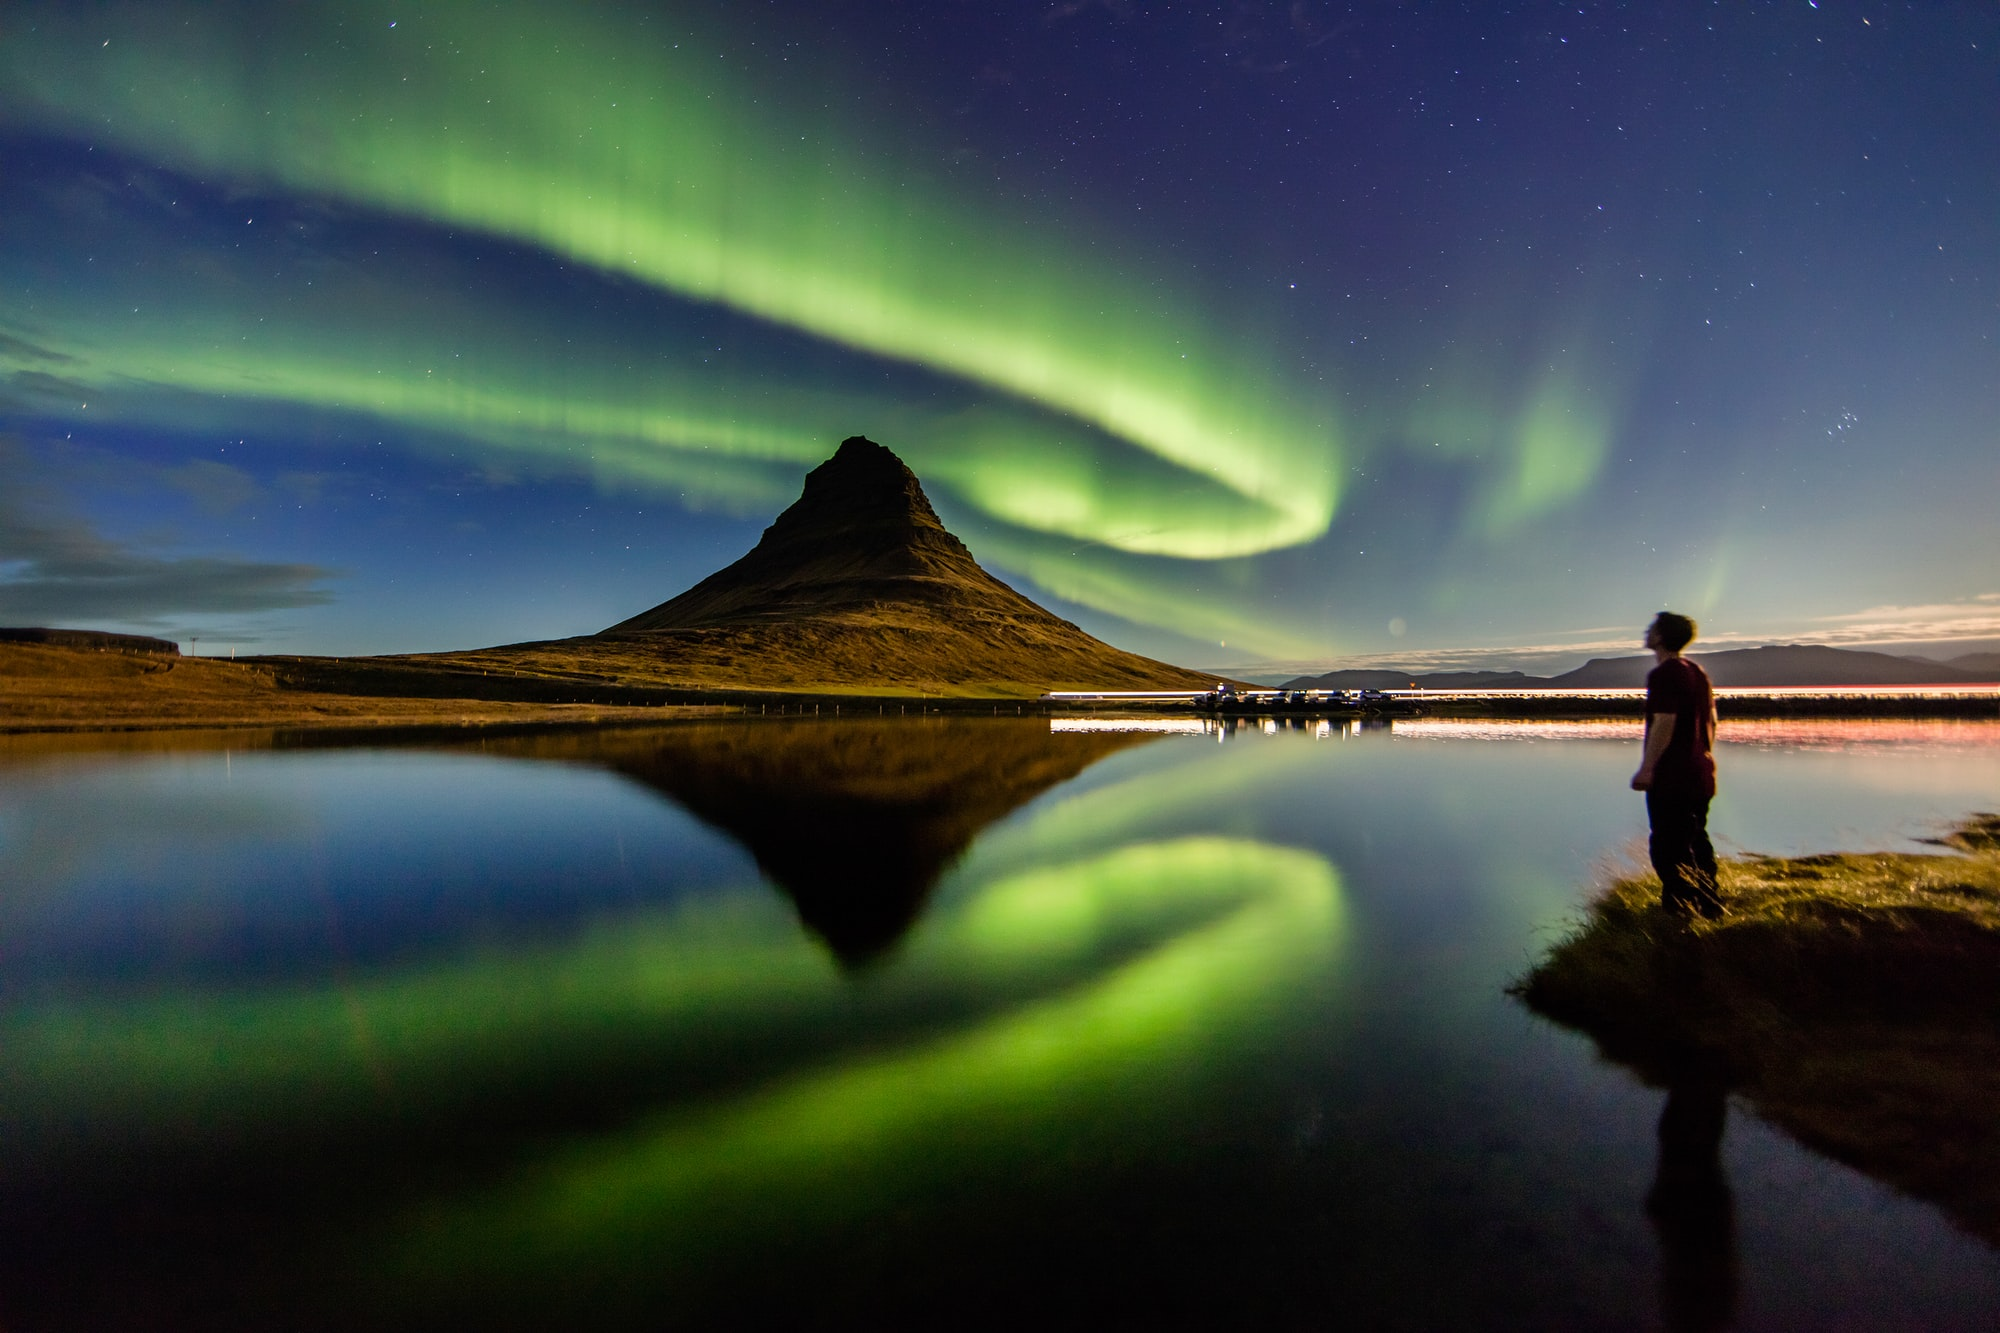 Reflection: The Northern Lights